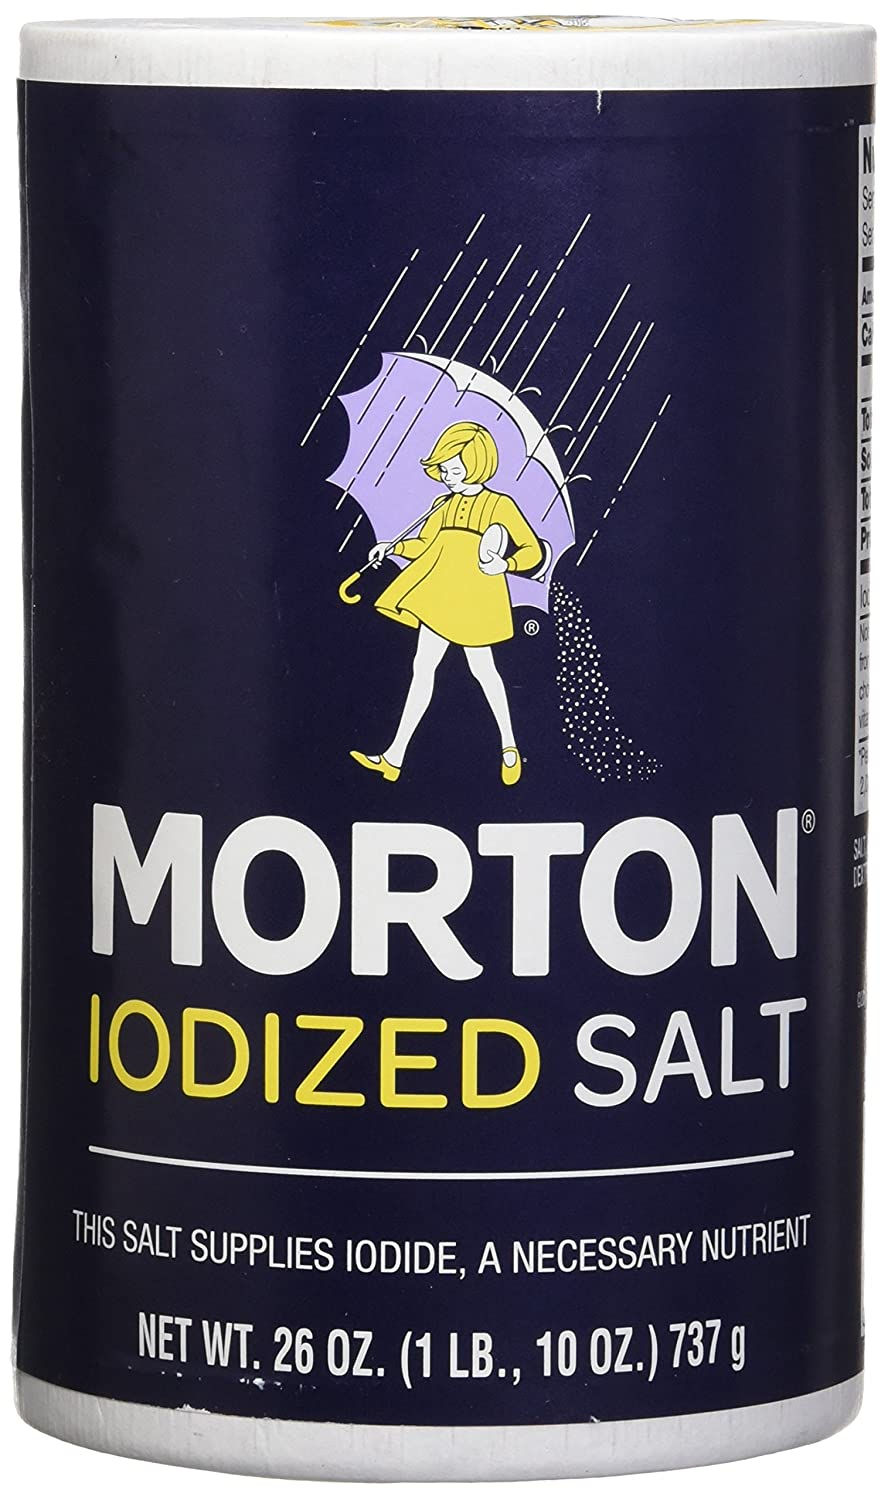 Morton Iodized Salt, 26 oz, Pack of 2 : Grocery & Gourmet Food